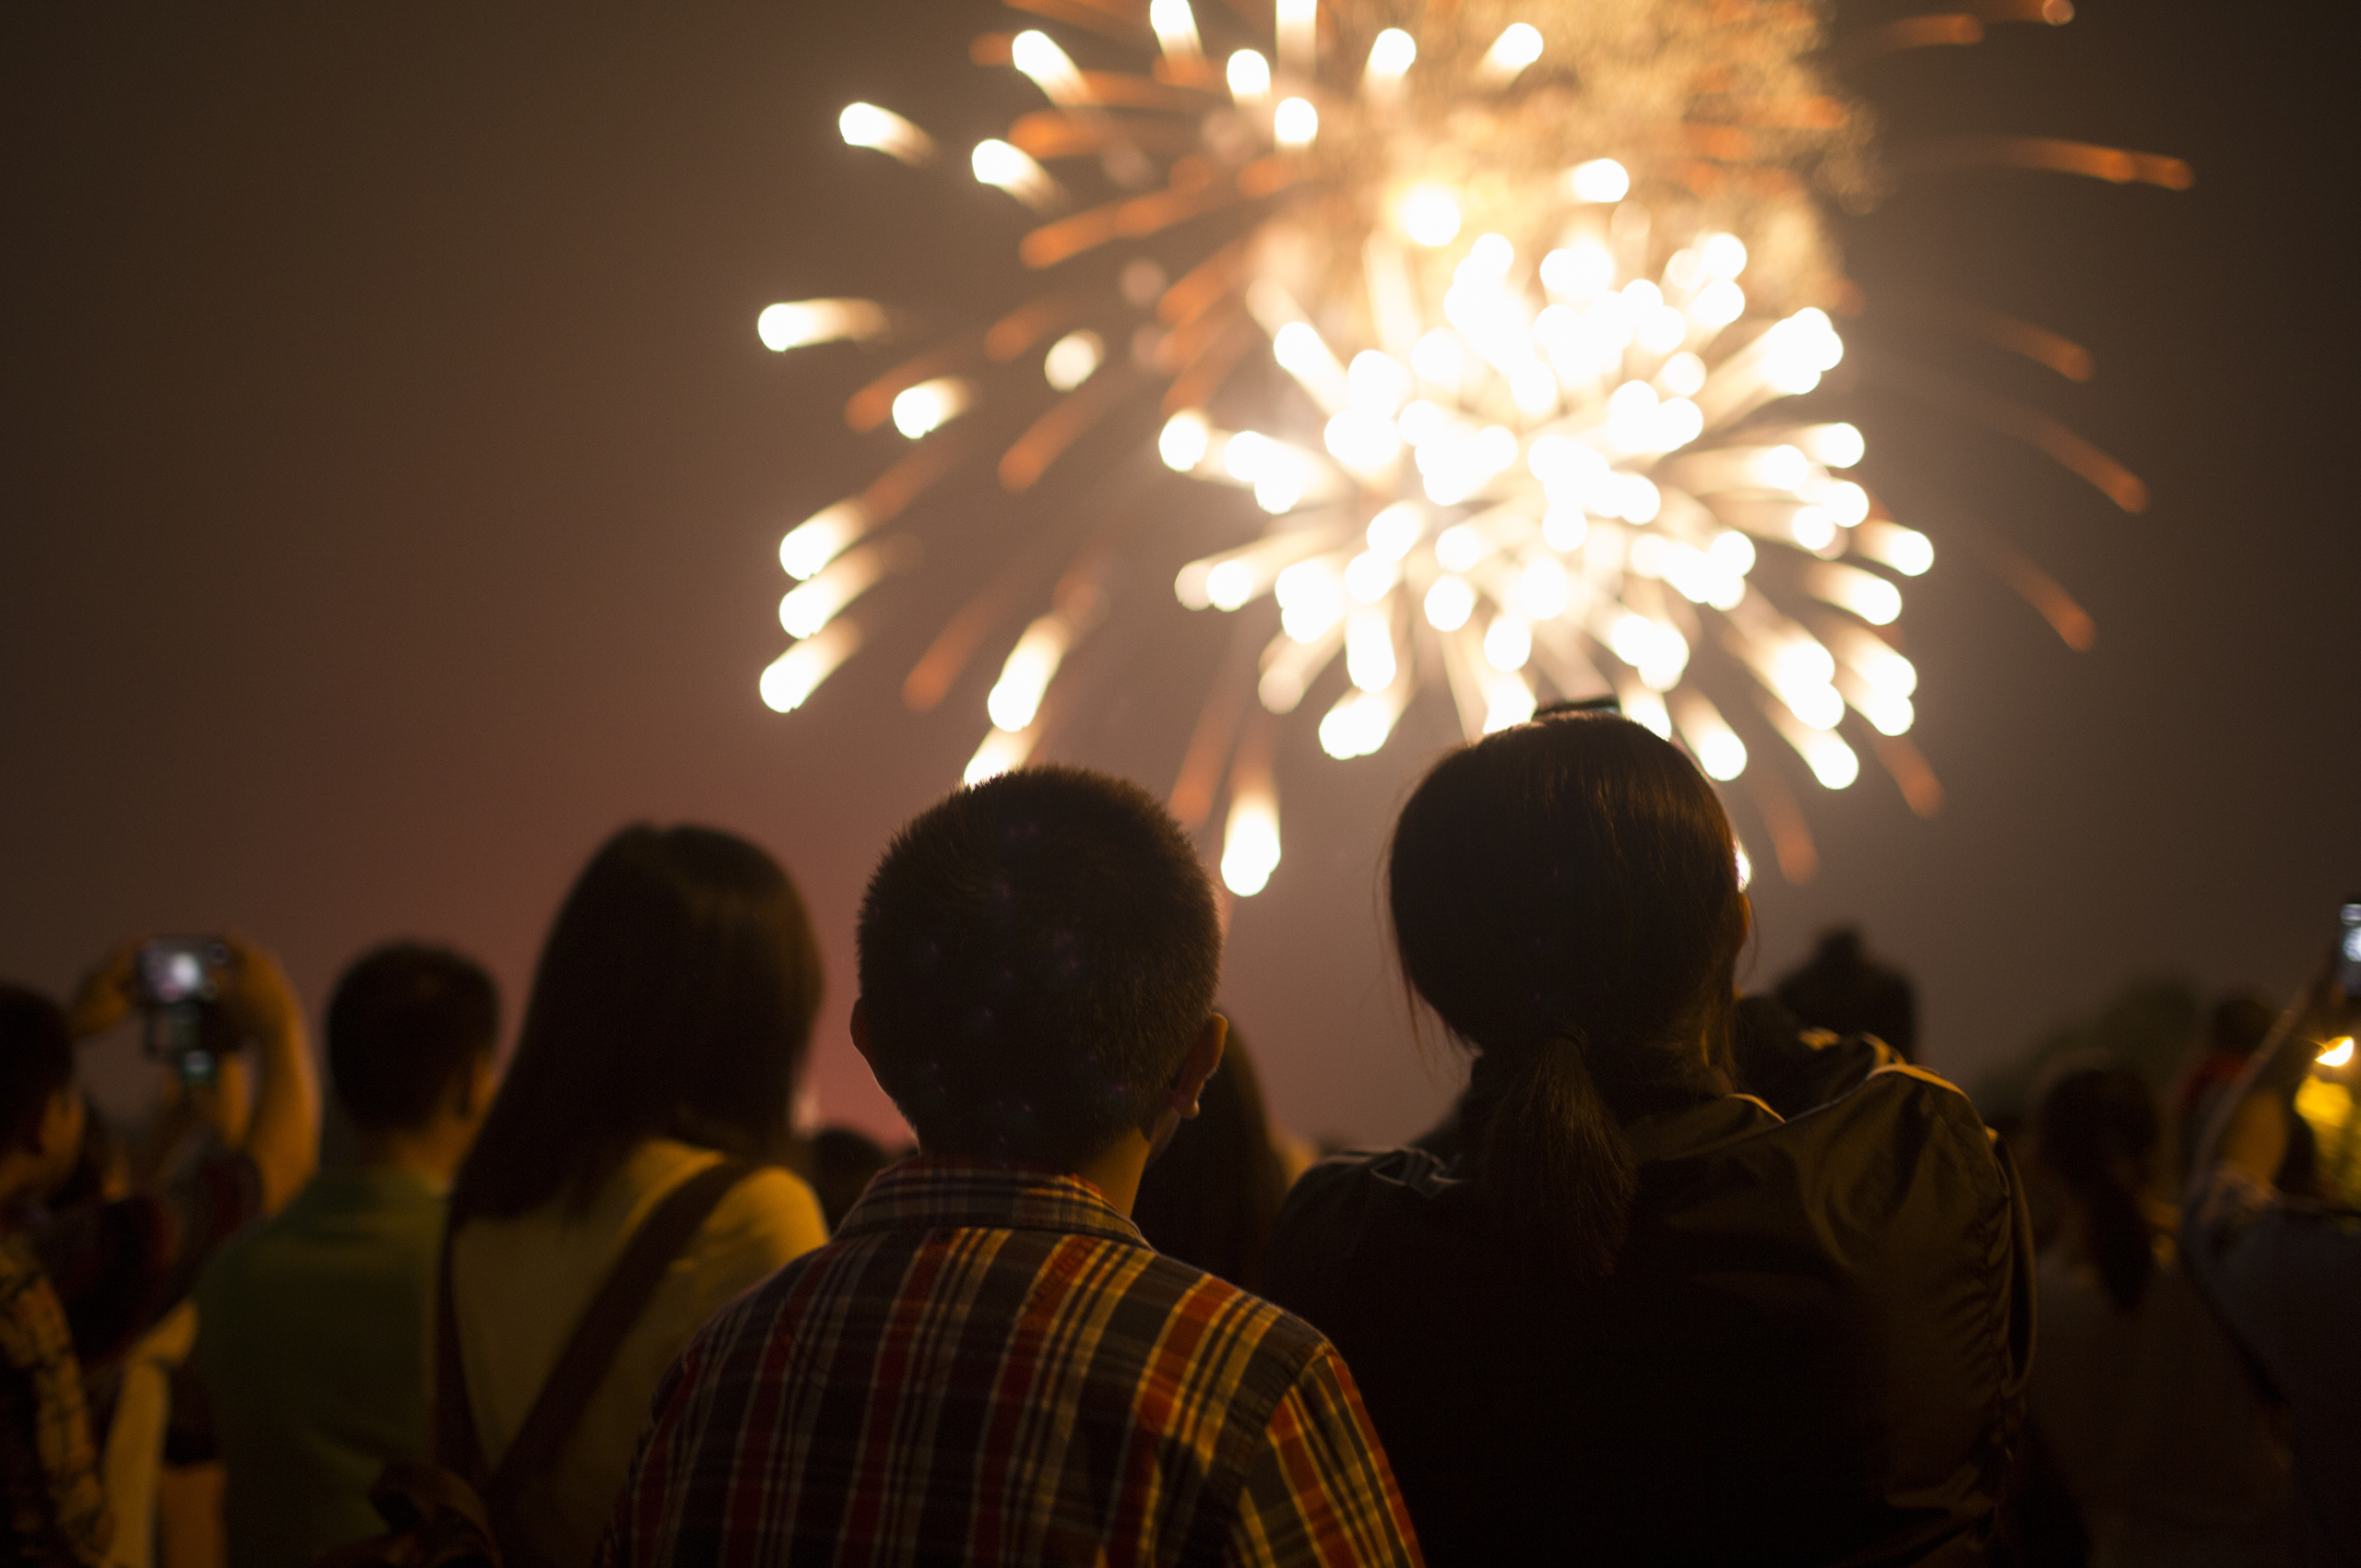 silhouette of people watching a firework display